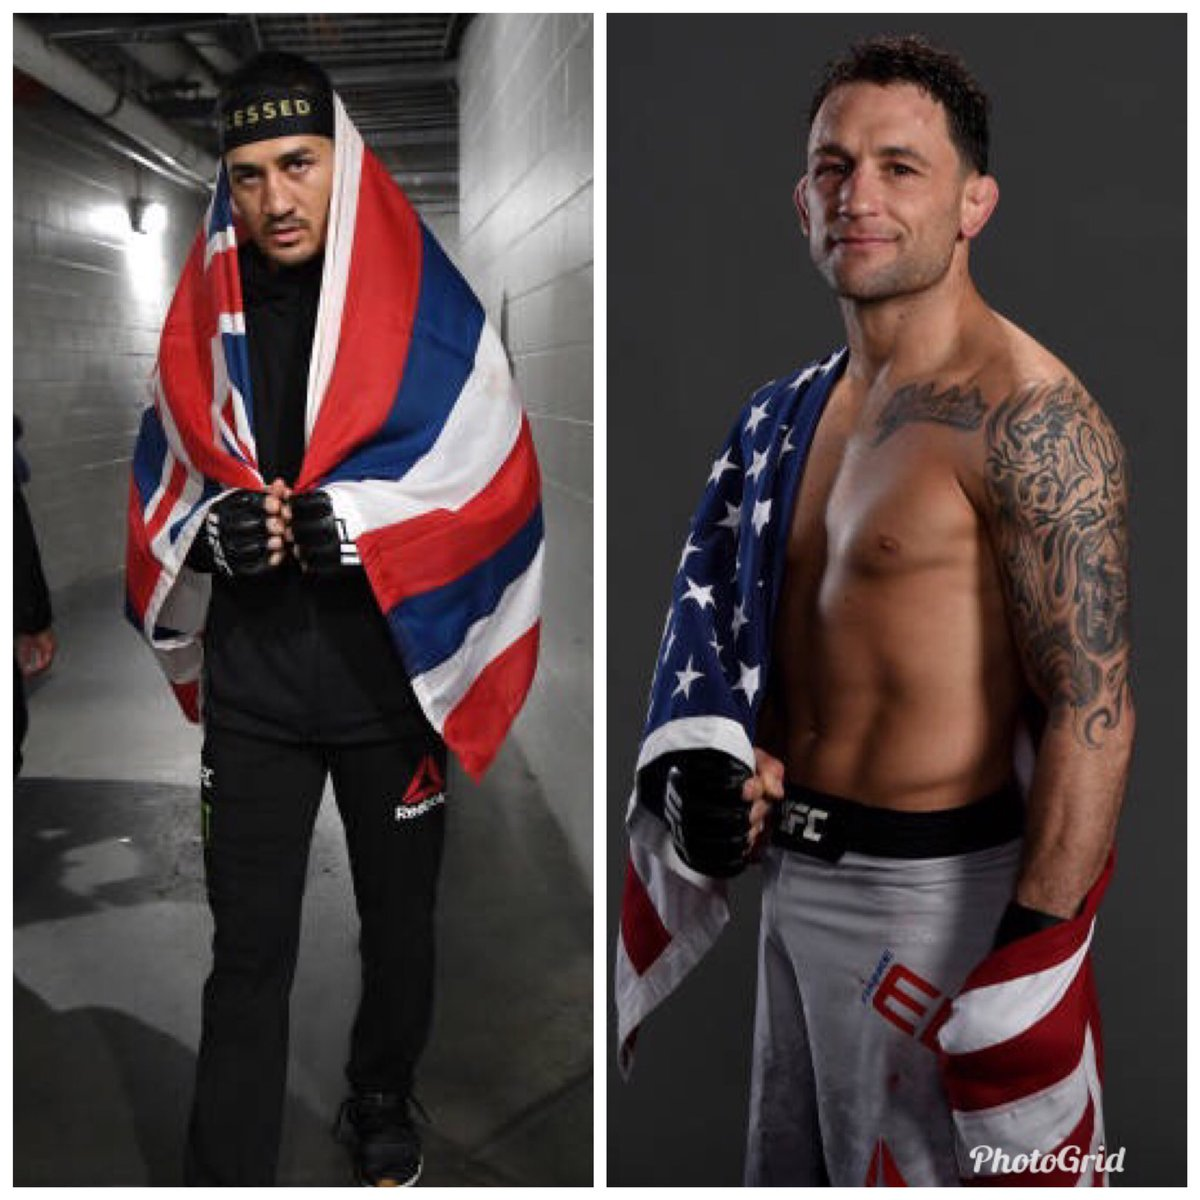 BREAKING: Max Holloway (@BlessedMMA) vs. Frankie Edgar (@FrankieEdgar) is verbally agreed for UFC 240 on July 27 in Edmonton. Story coming to ESPN.